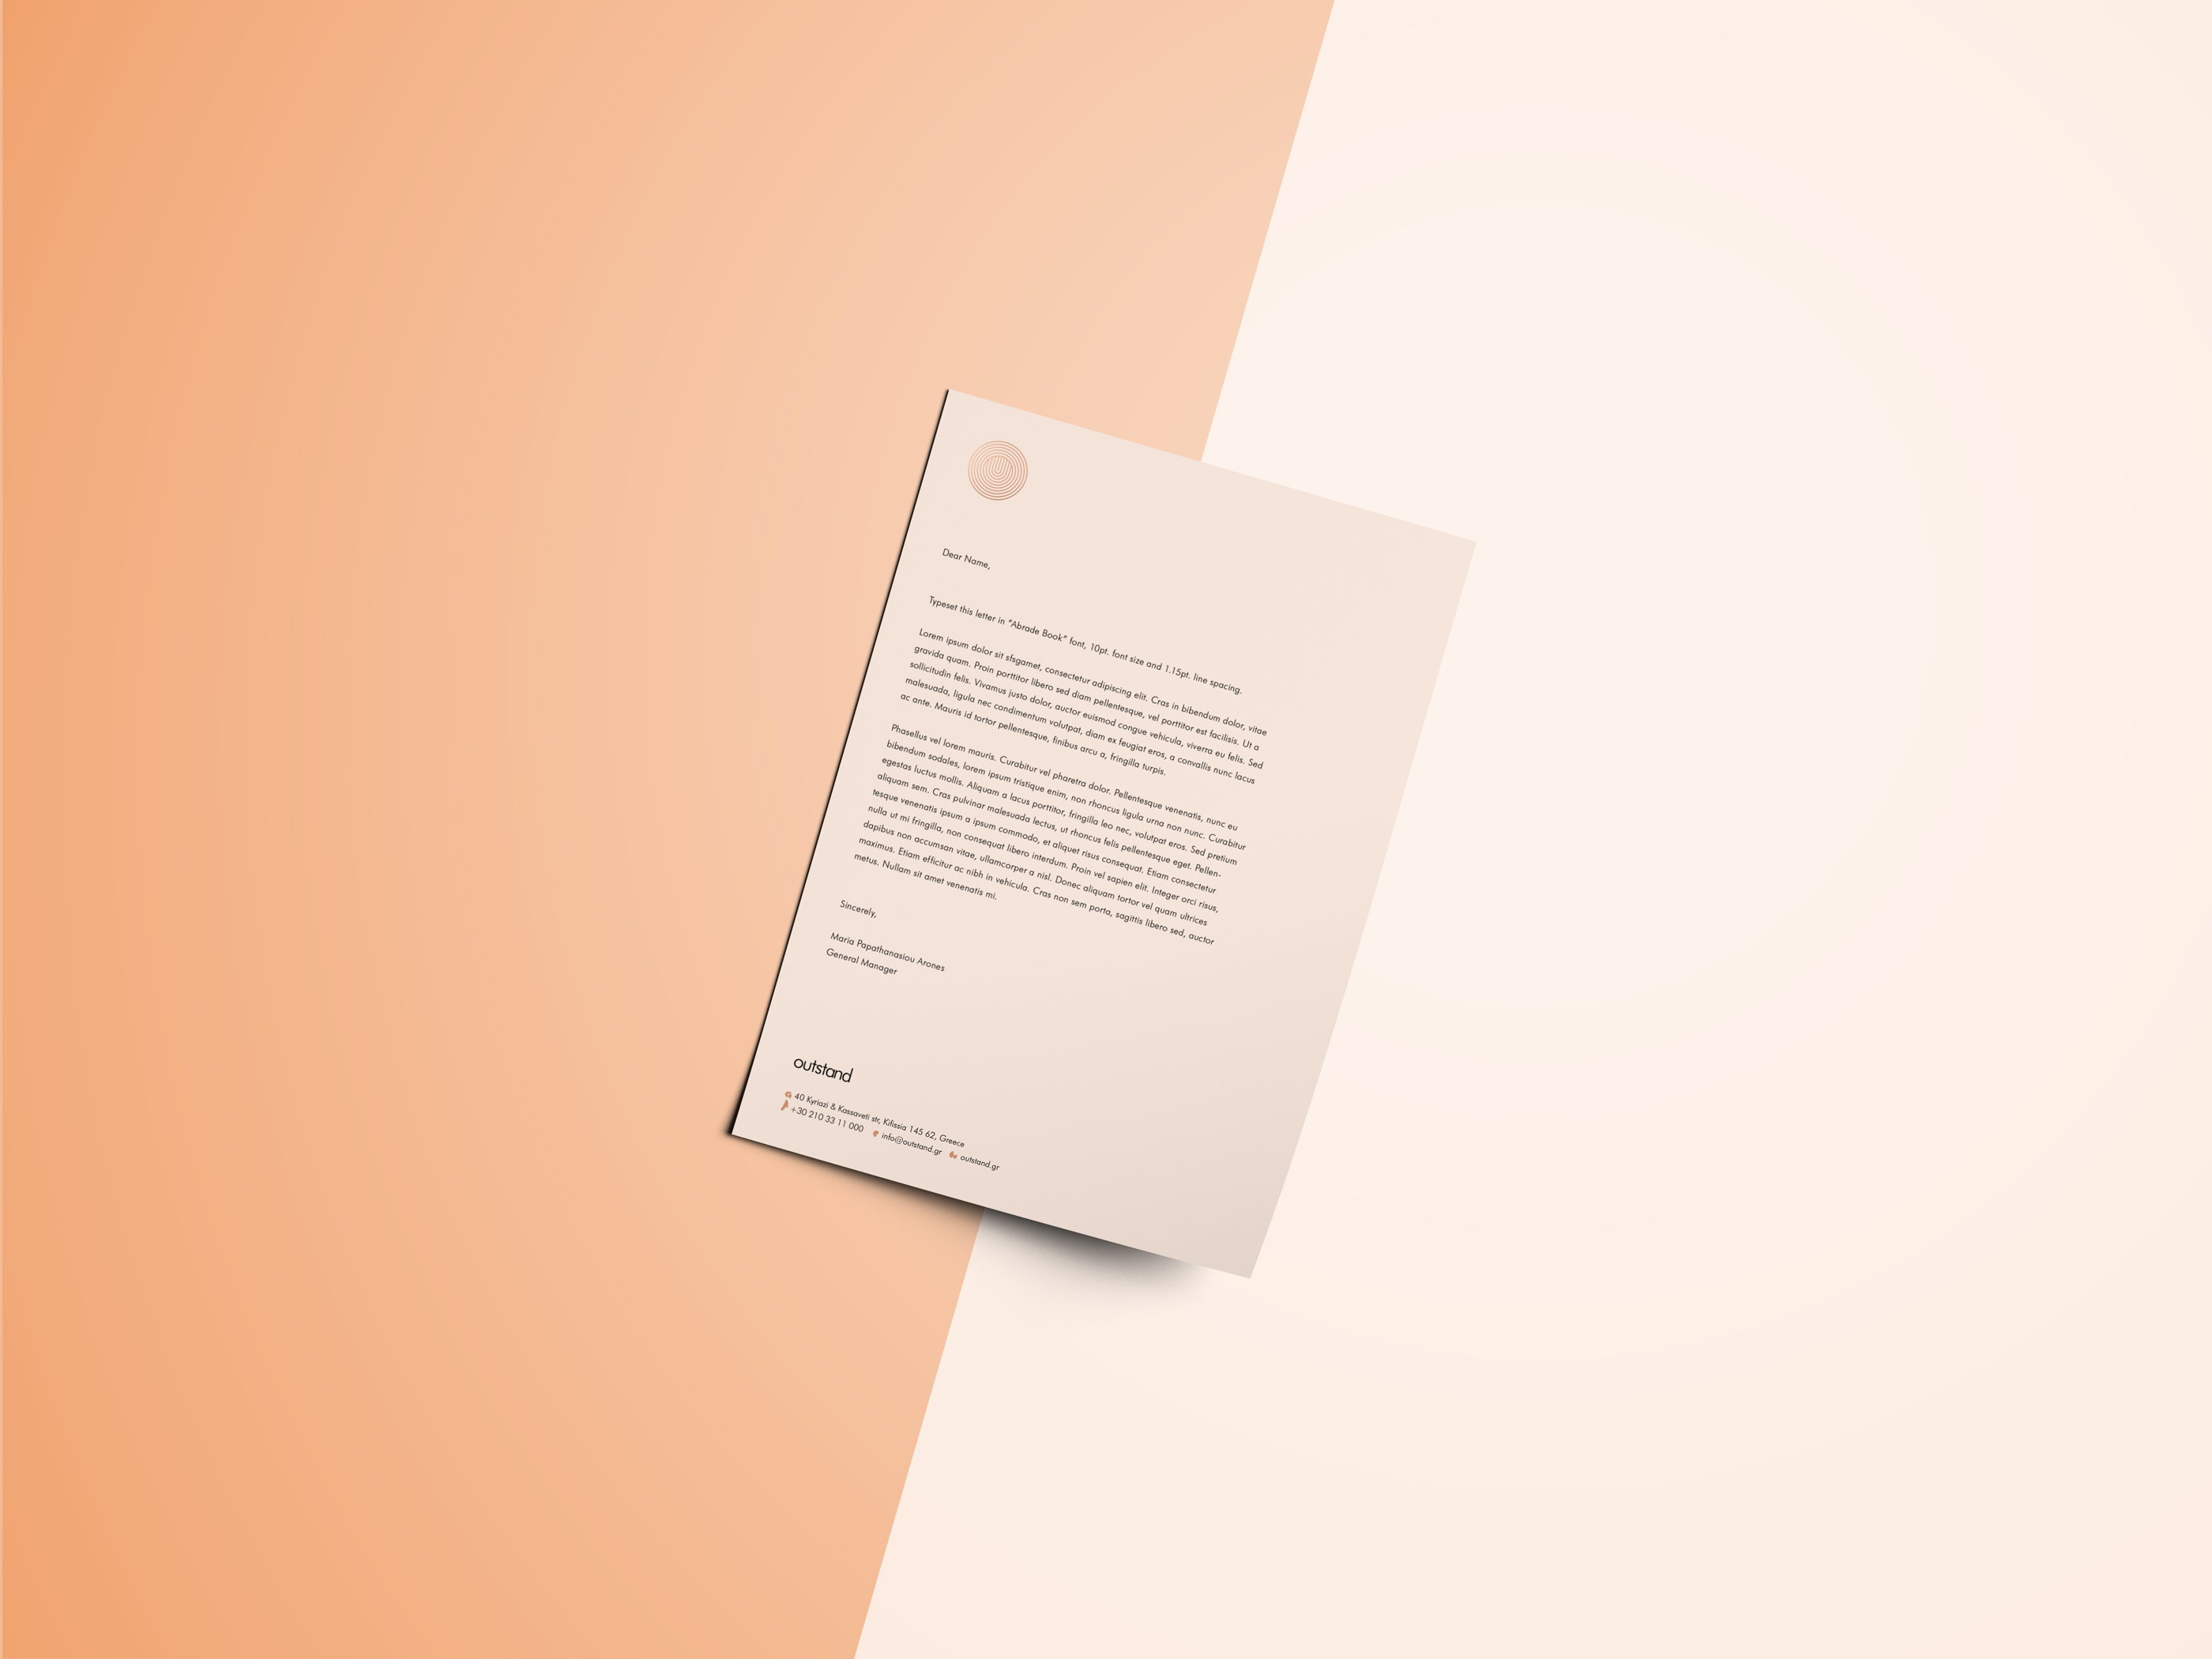 Outstand Bespoke Communications - Letterhead